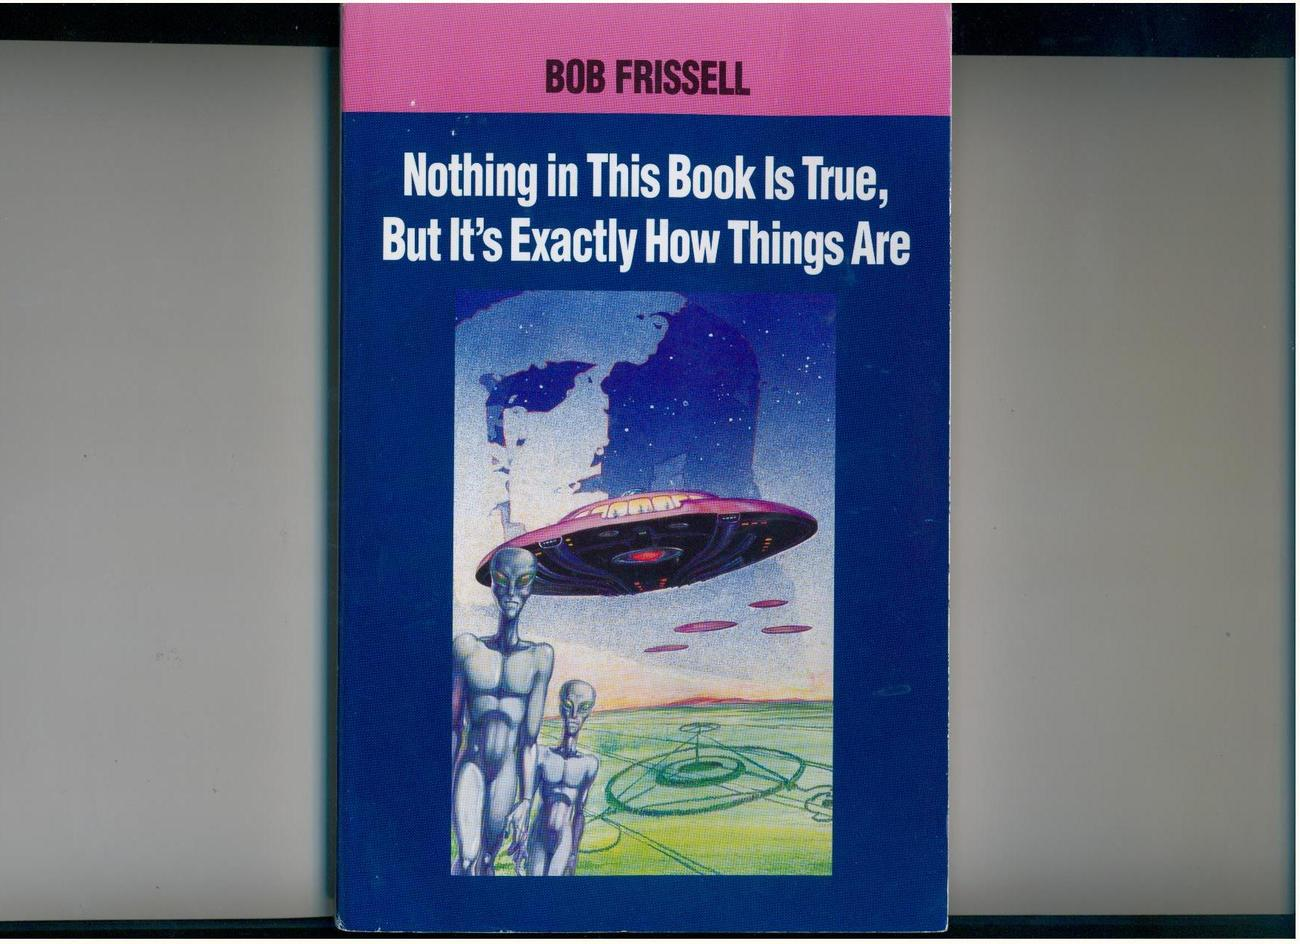 Frissell--NOTHING IN THIS BOOK IS TRUE...--1994, signed 1st